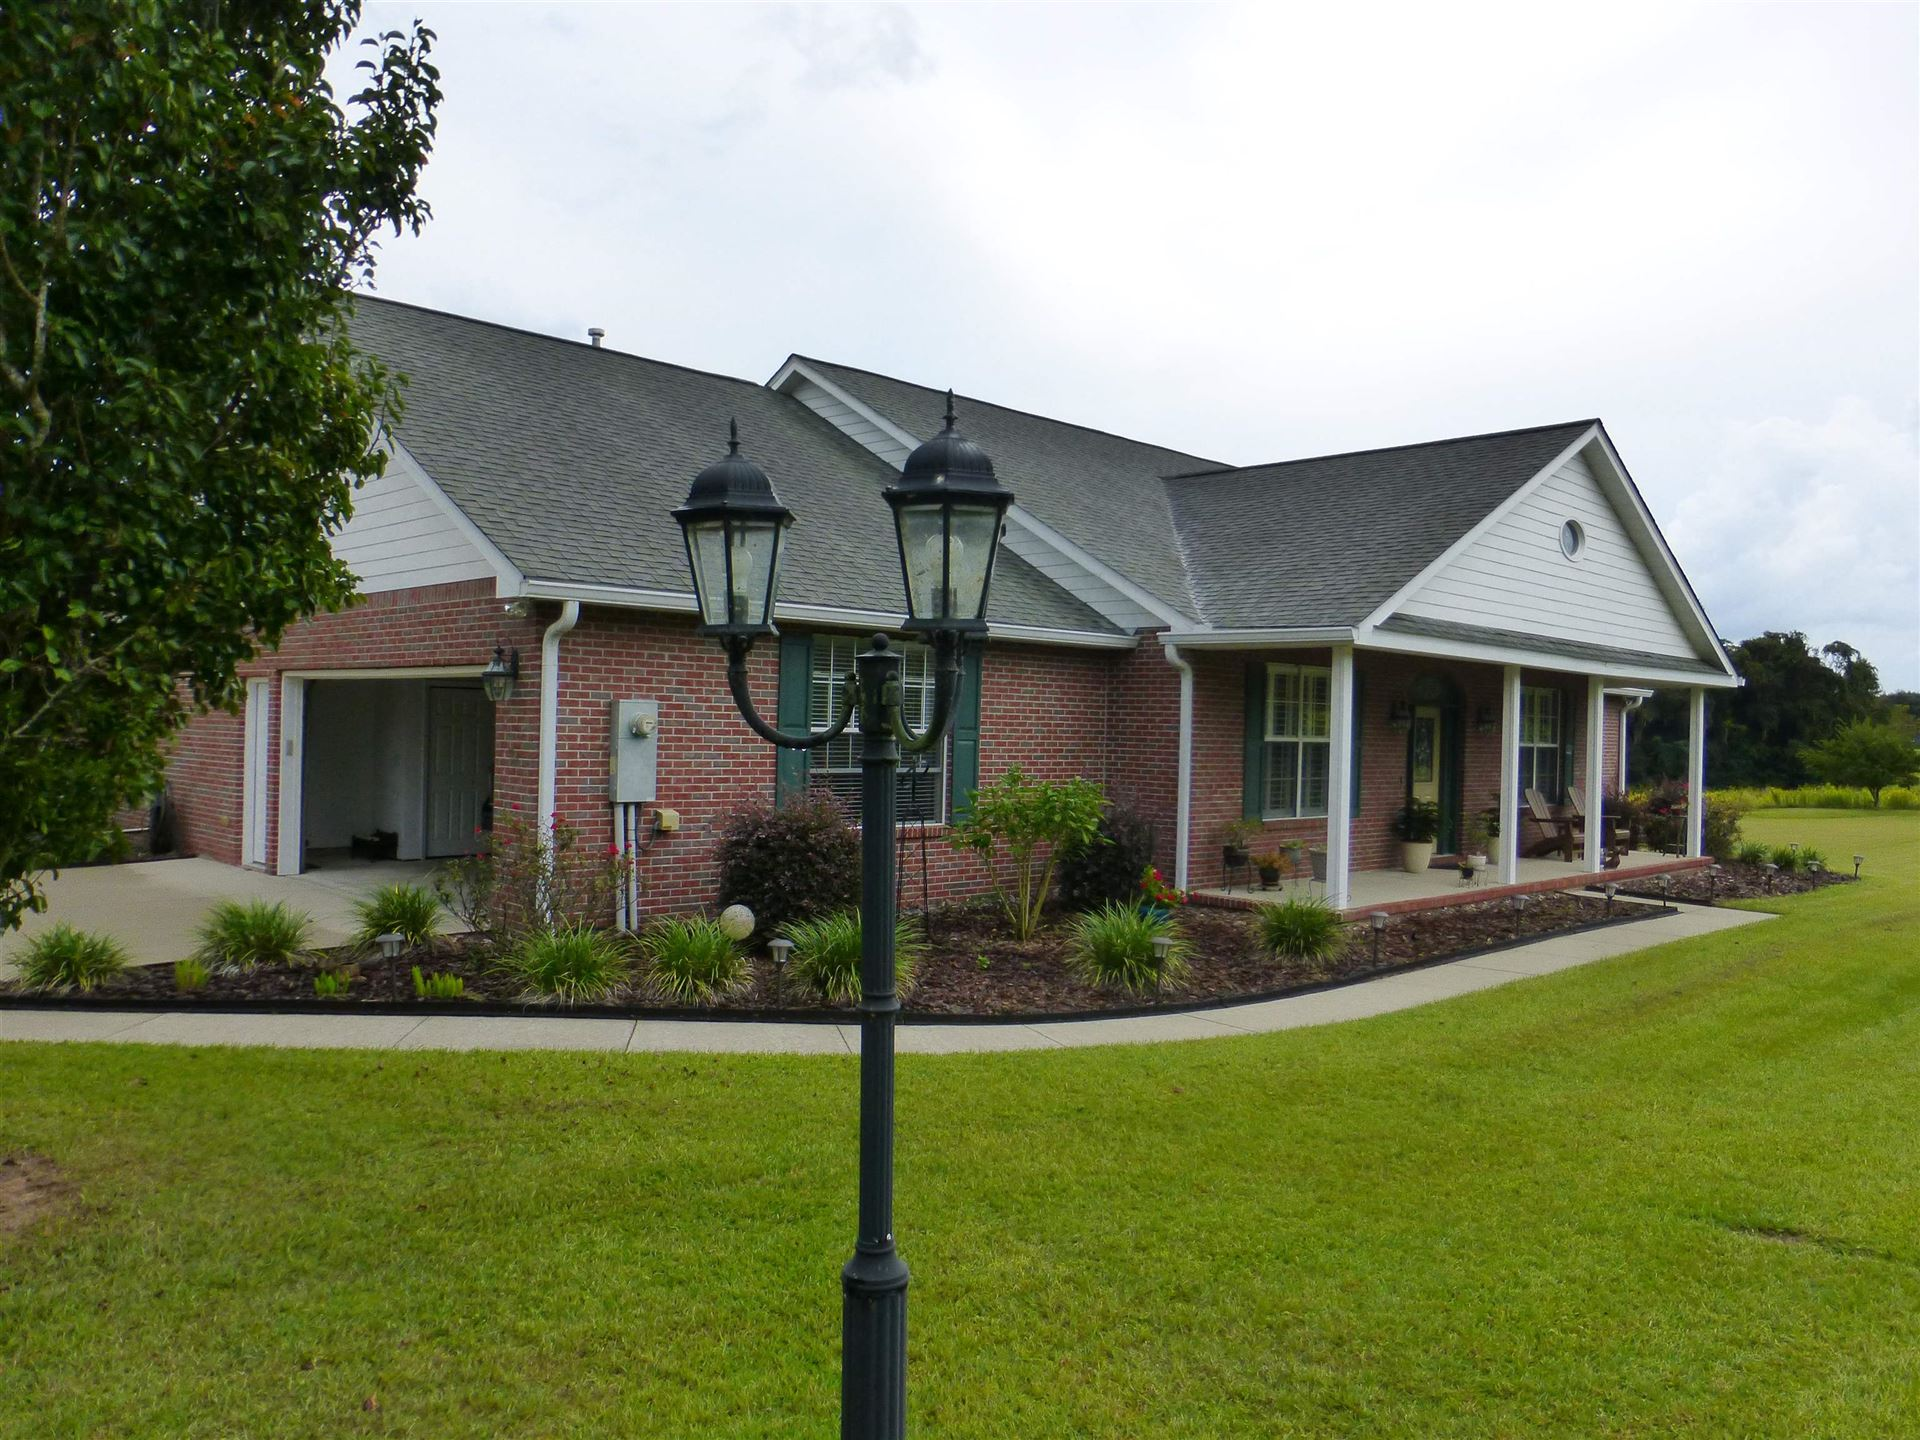 Photo of 557 Tally Hills Drive, MONTICELLO, FL 32344 (MLS # 338066)